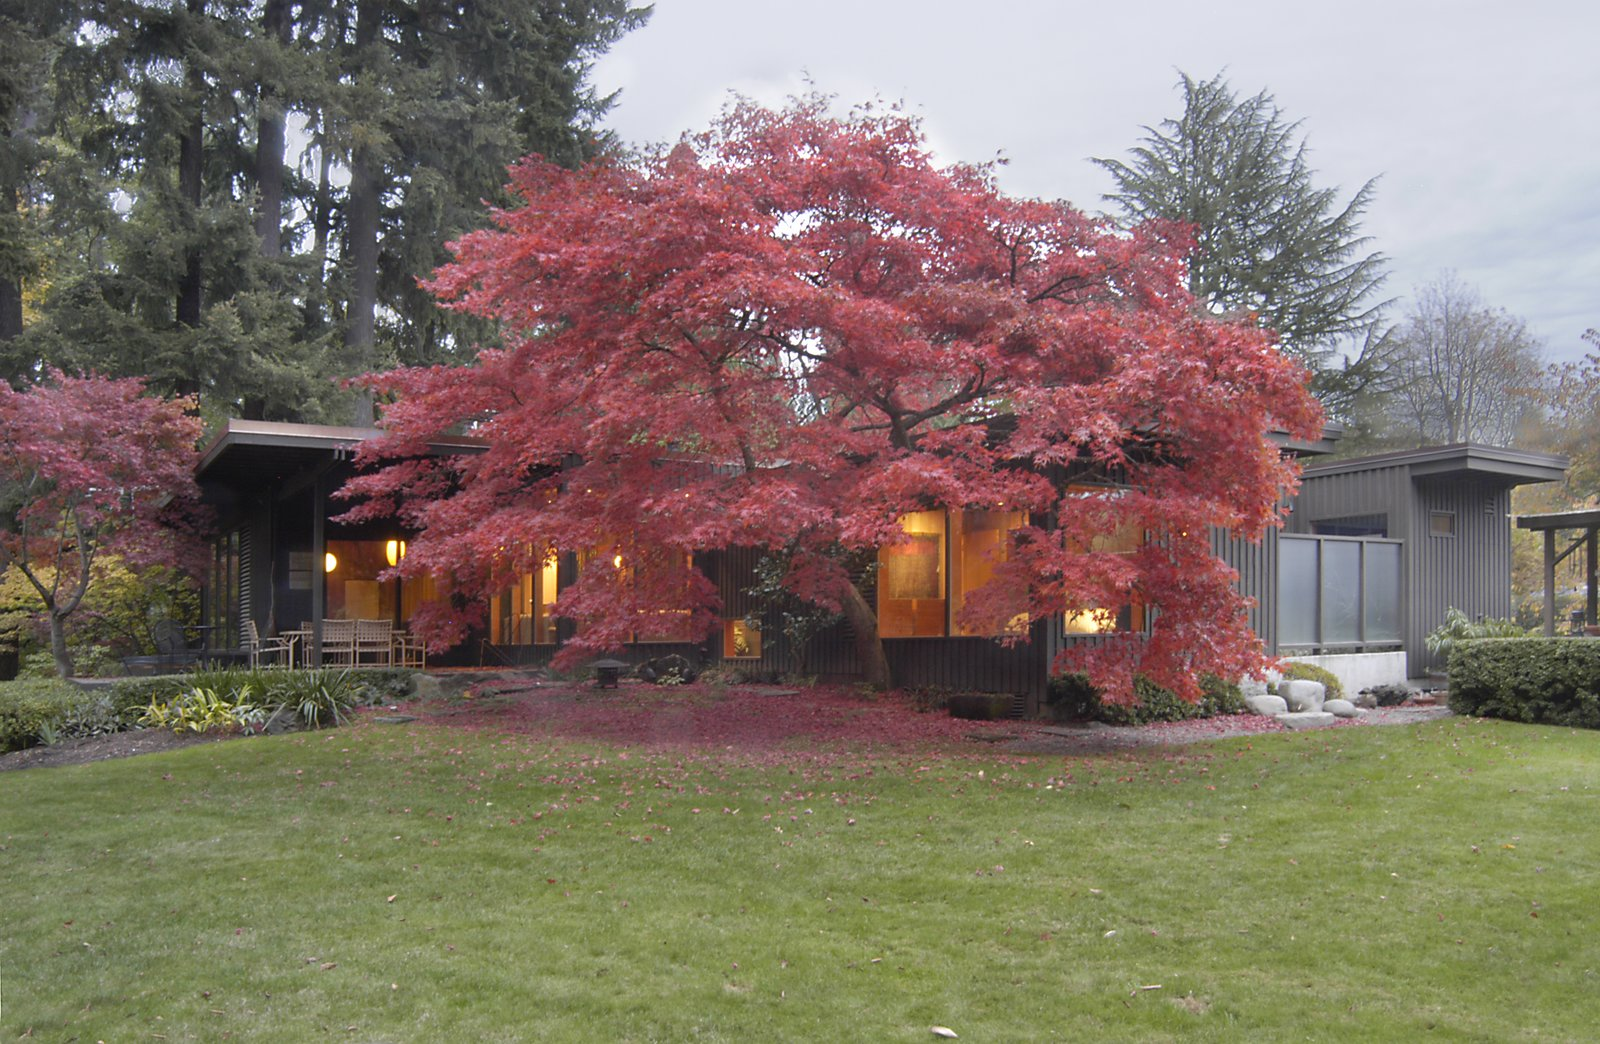 The new wing blends seamlessly with the original 1949 home, as it wraps around a majestic Japanese maple tree. The home, a prime example of Northwest Midcentury Modern architecture, adopts a muted color palette allowing it to coalesce with its natural surroundings.     Belluschi Addition by Richard Brown Architect